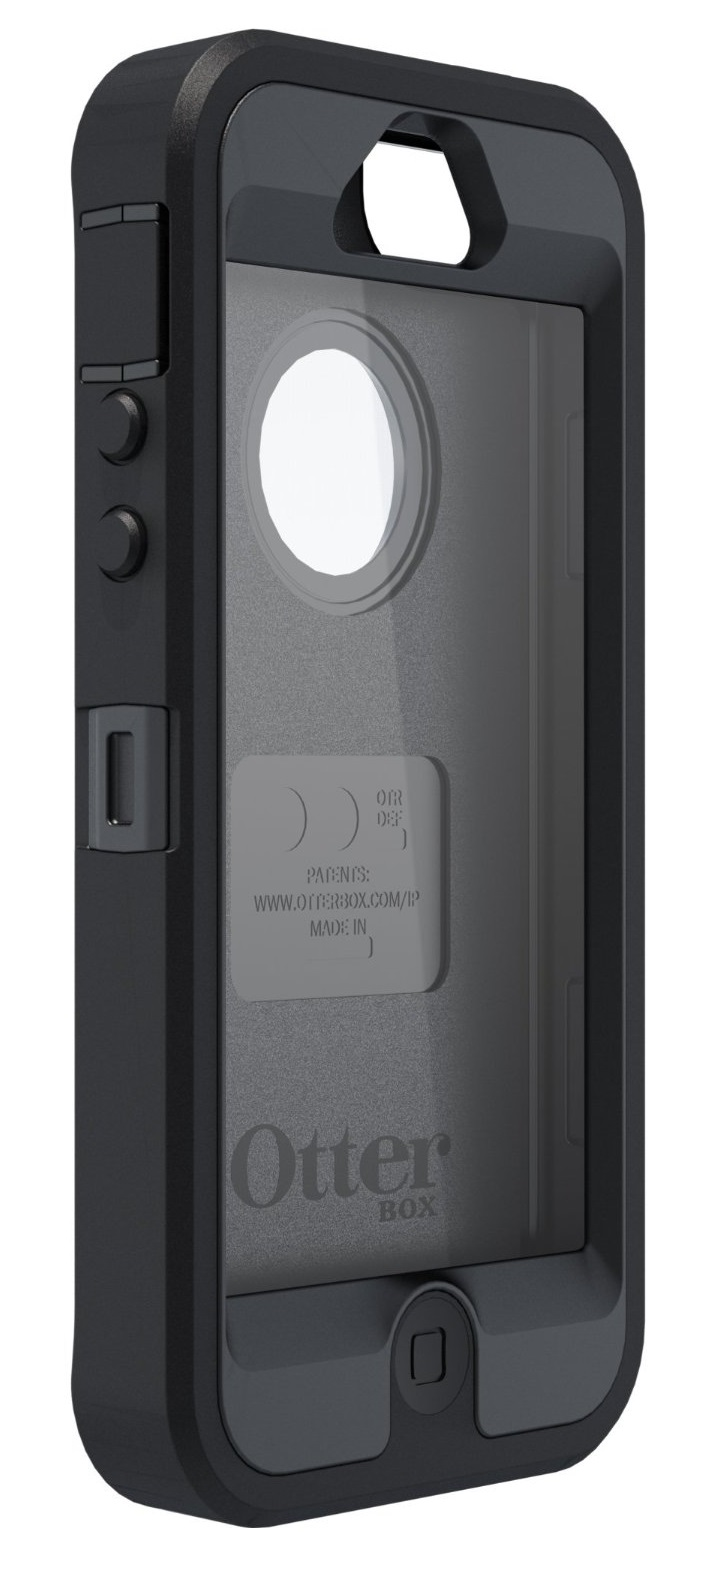 iphone 5 otterbox cases otterbox defender belt holster for apple iphone 5 9488